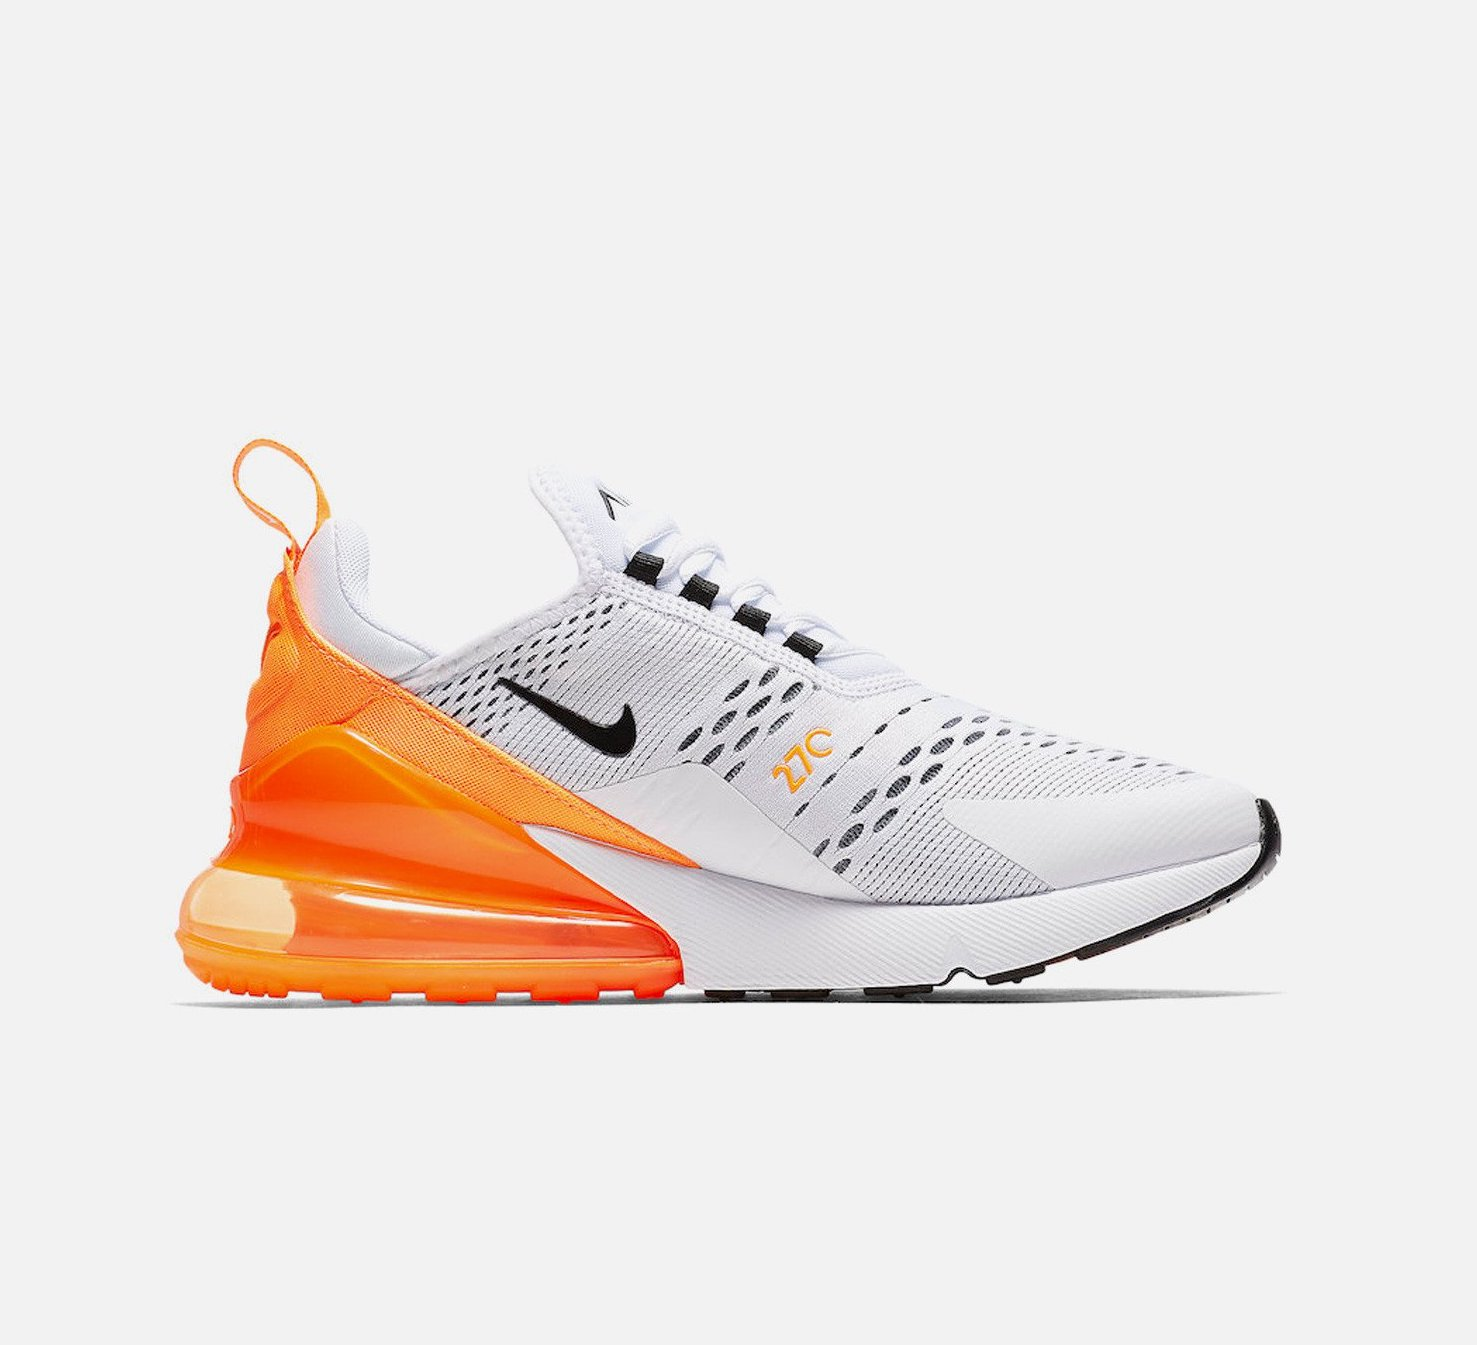 Emigrar Conceder Lidiar con  Now Available: Women's Nike Air Max 270 Just Do It